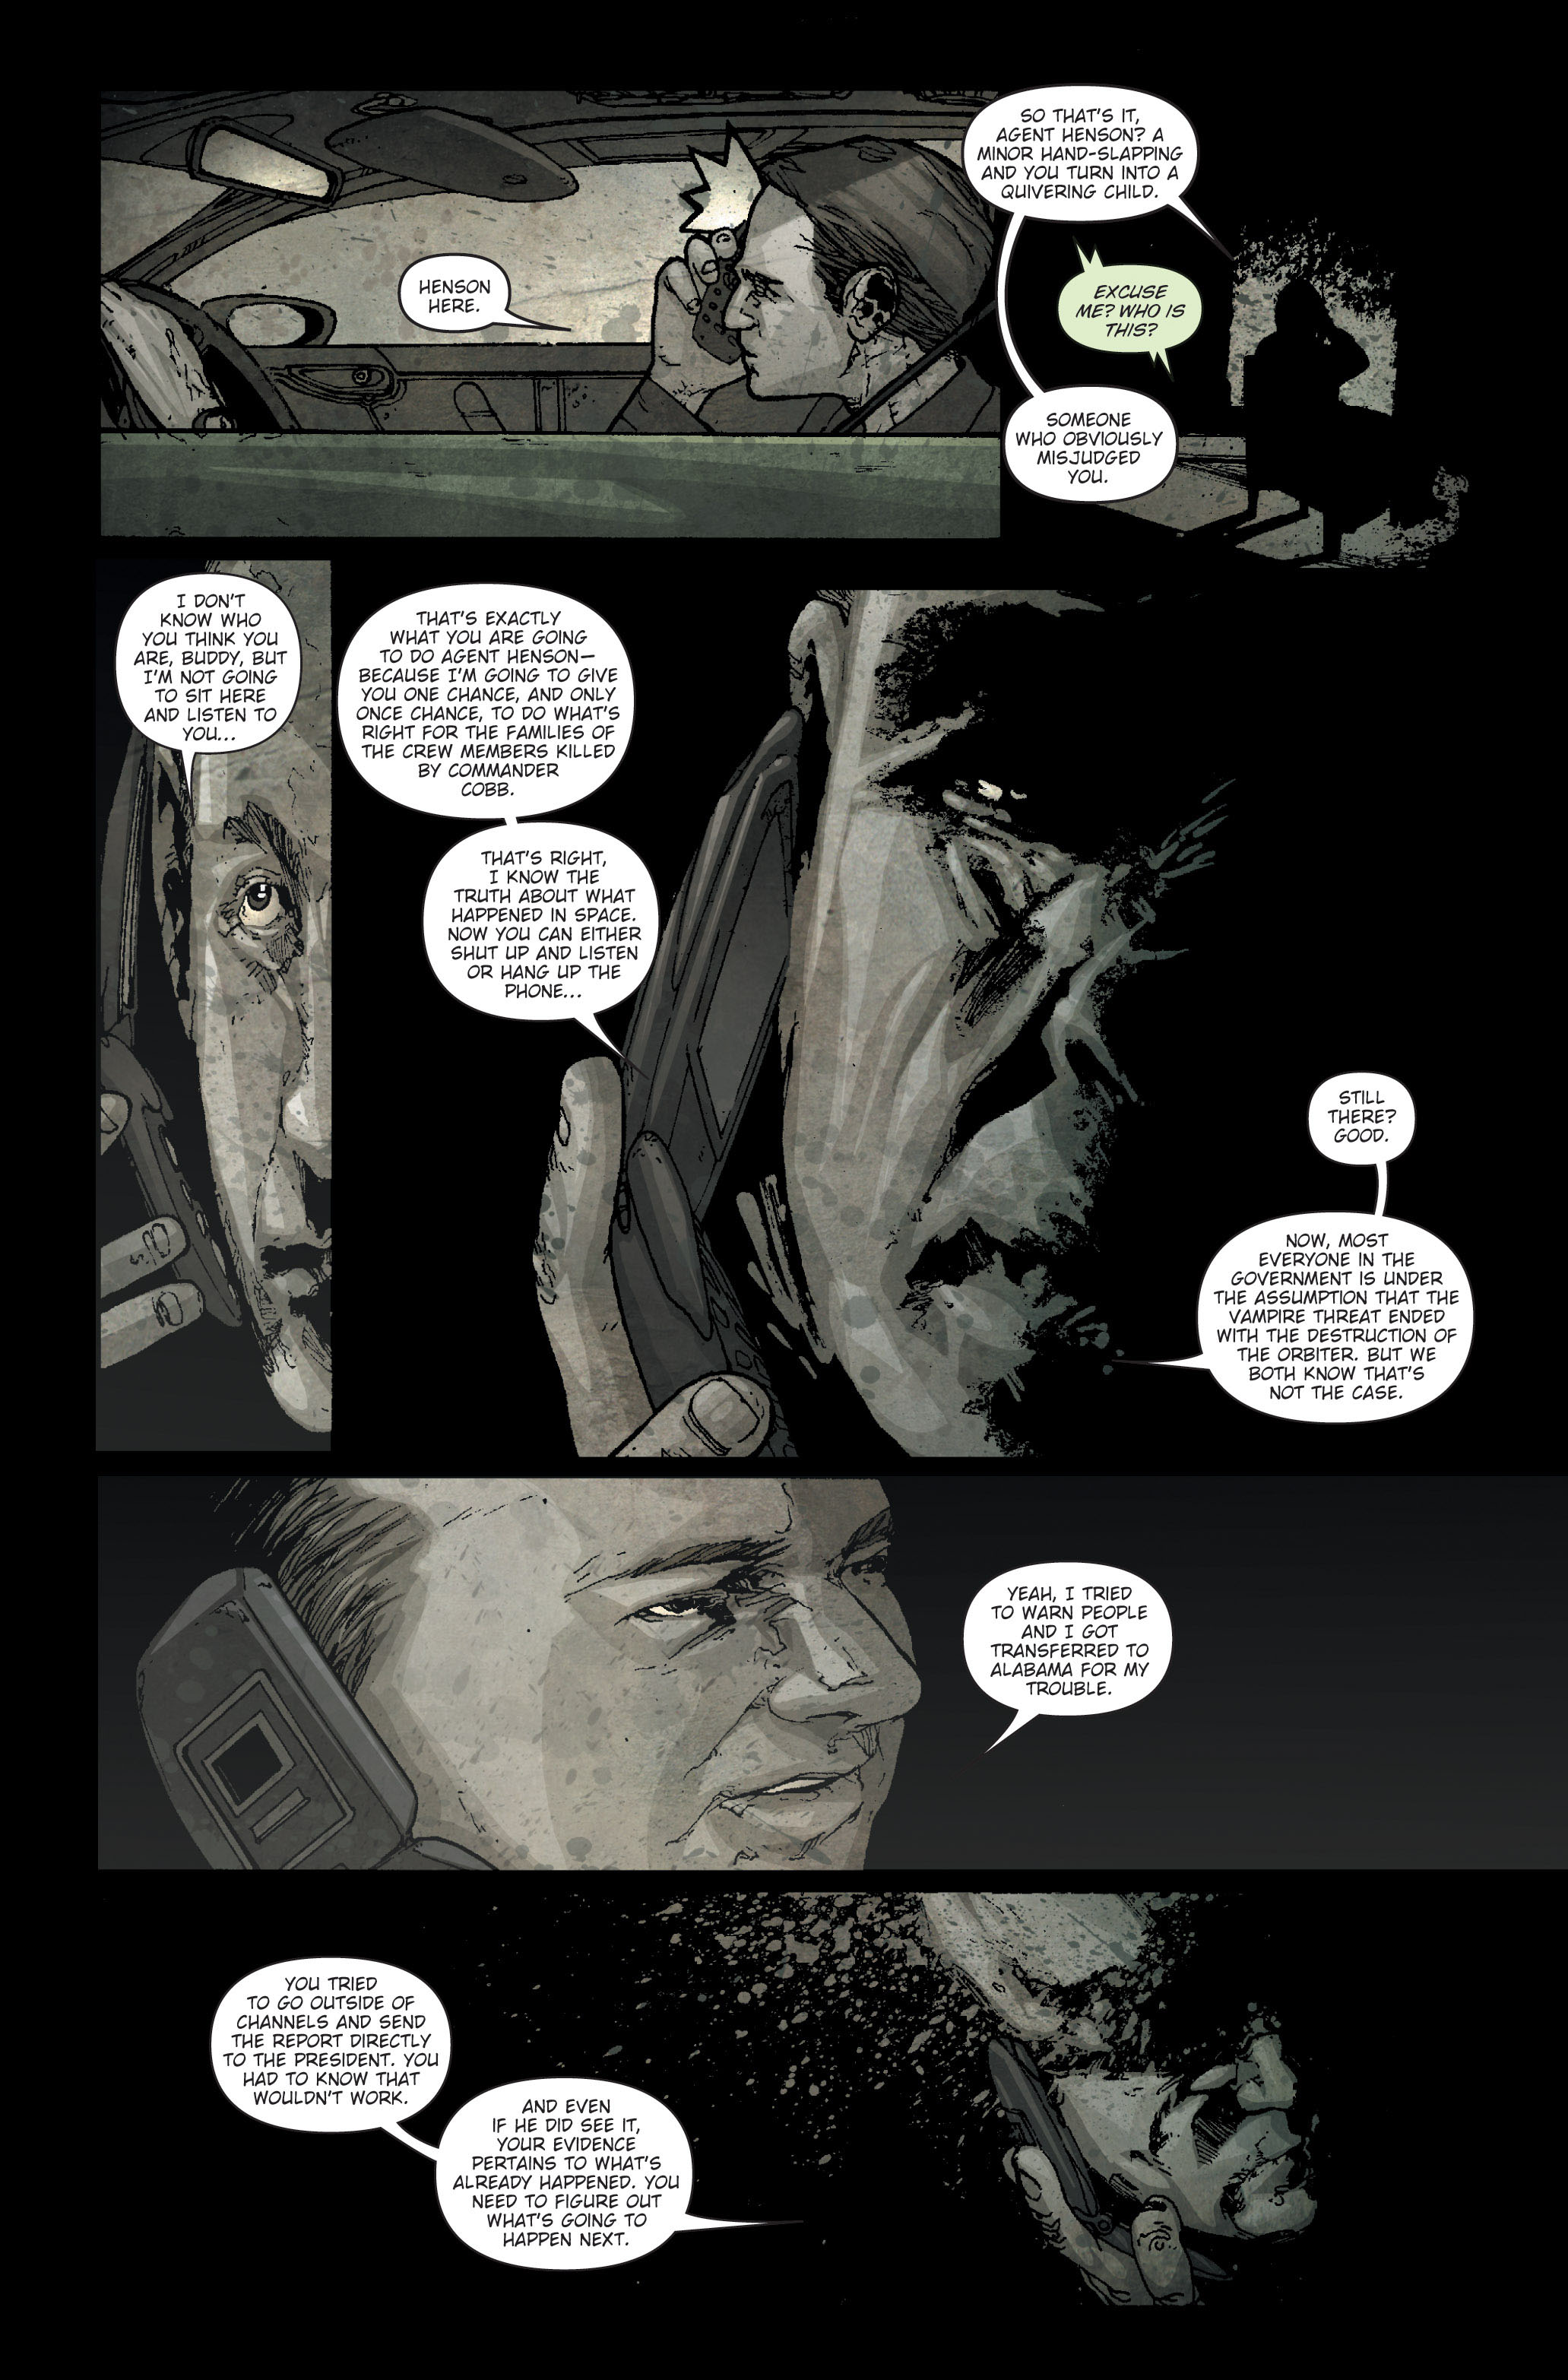 30 Days of Night: Spreading the Disease 1 Page 7